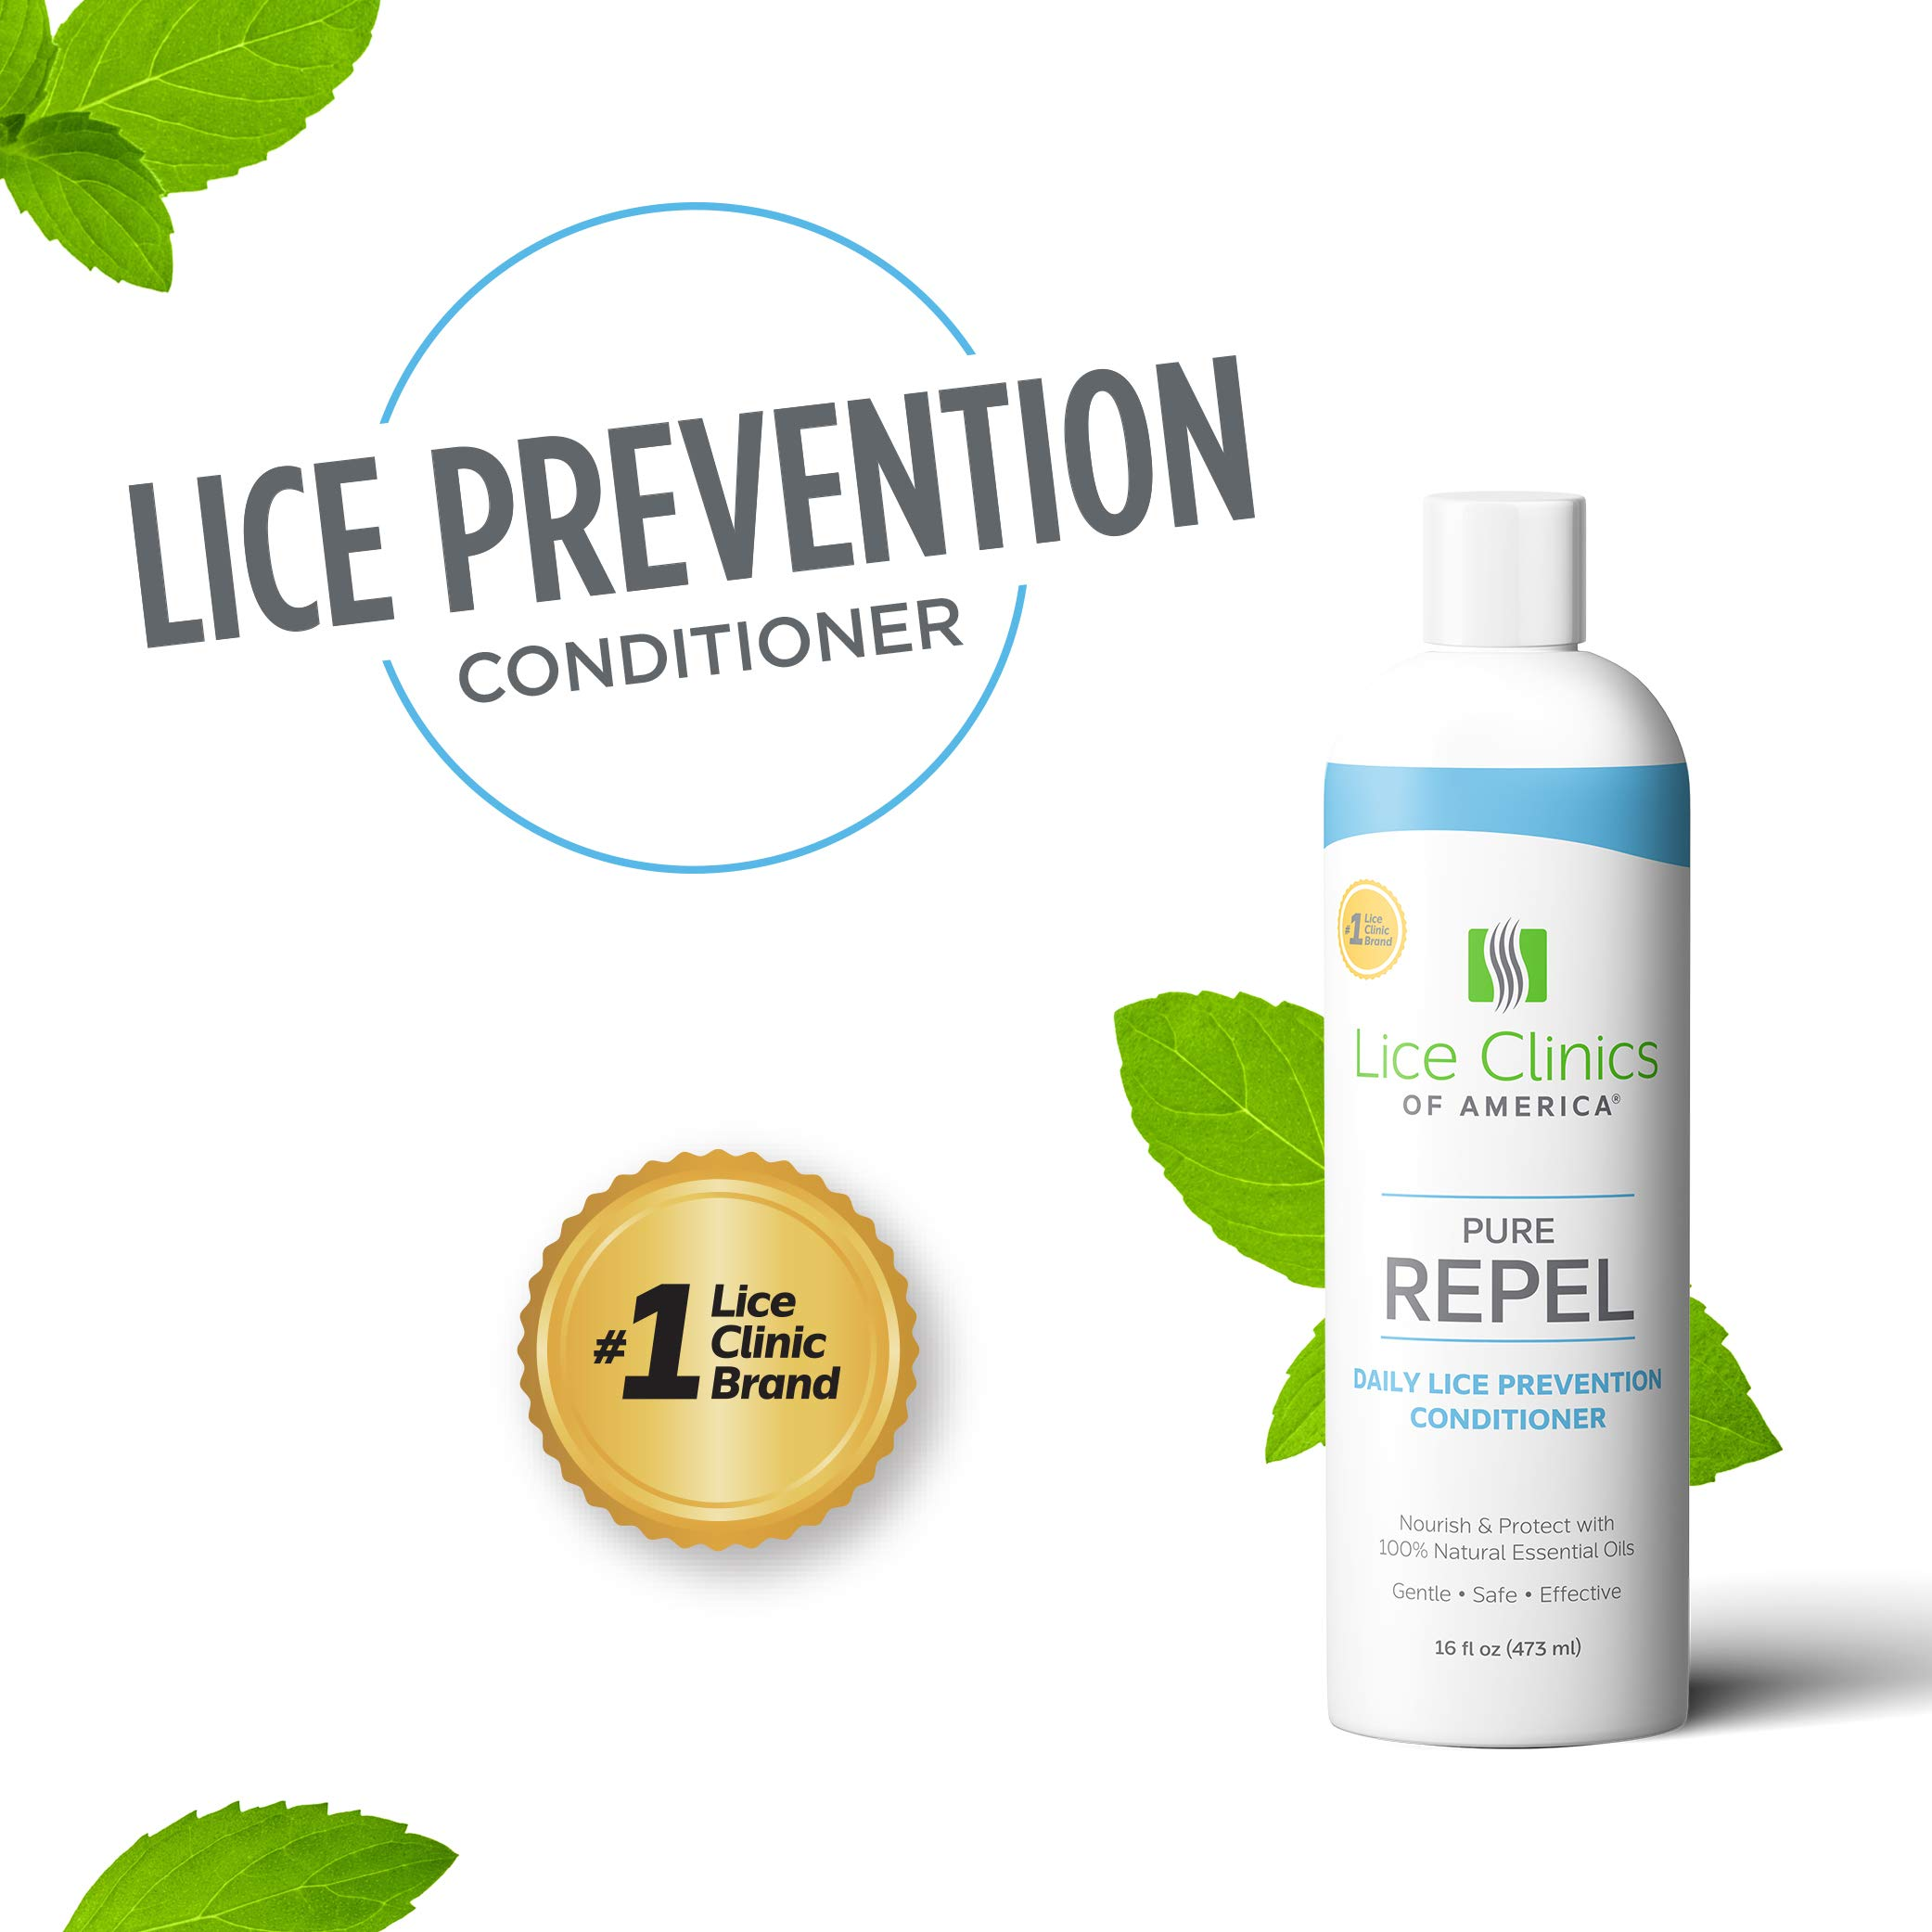 Lice Clinics of America Lice Prevention Conditioner - Repel Lice with 100% Natural Essential Oils by Lice Clinics of America